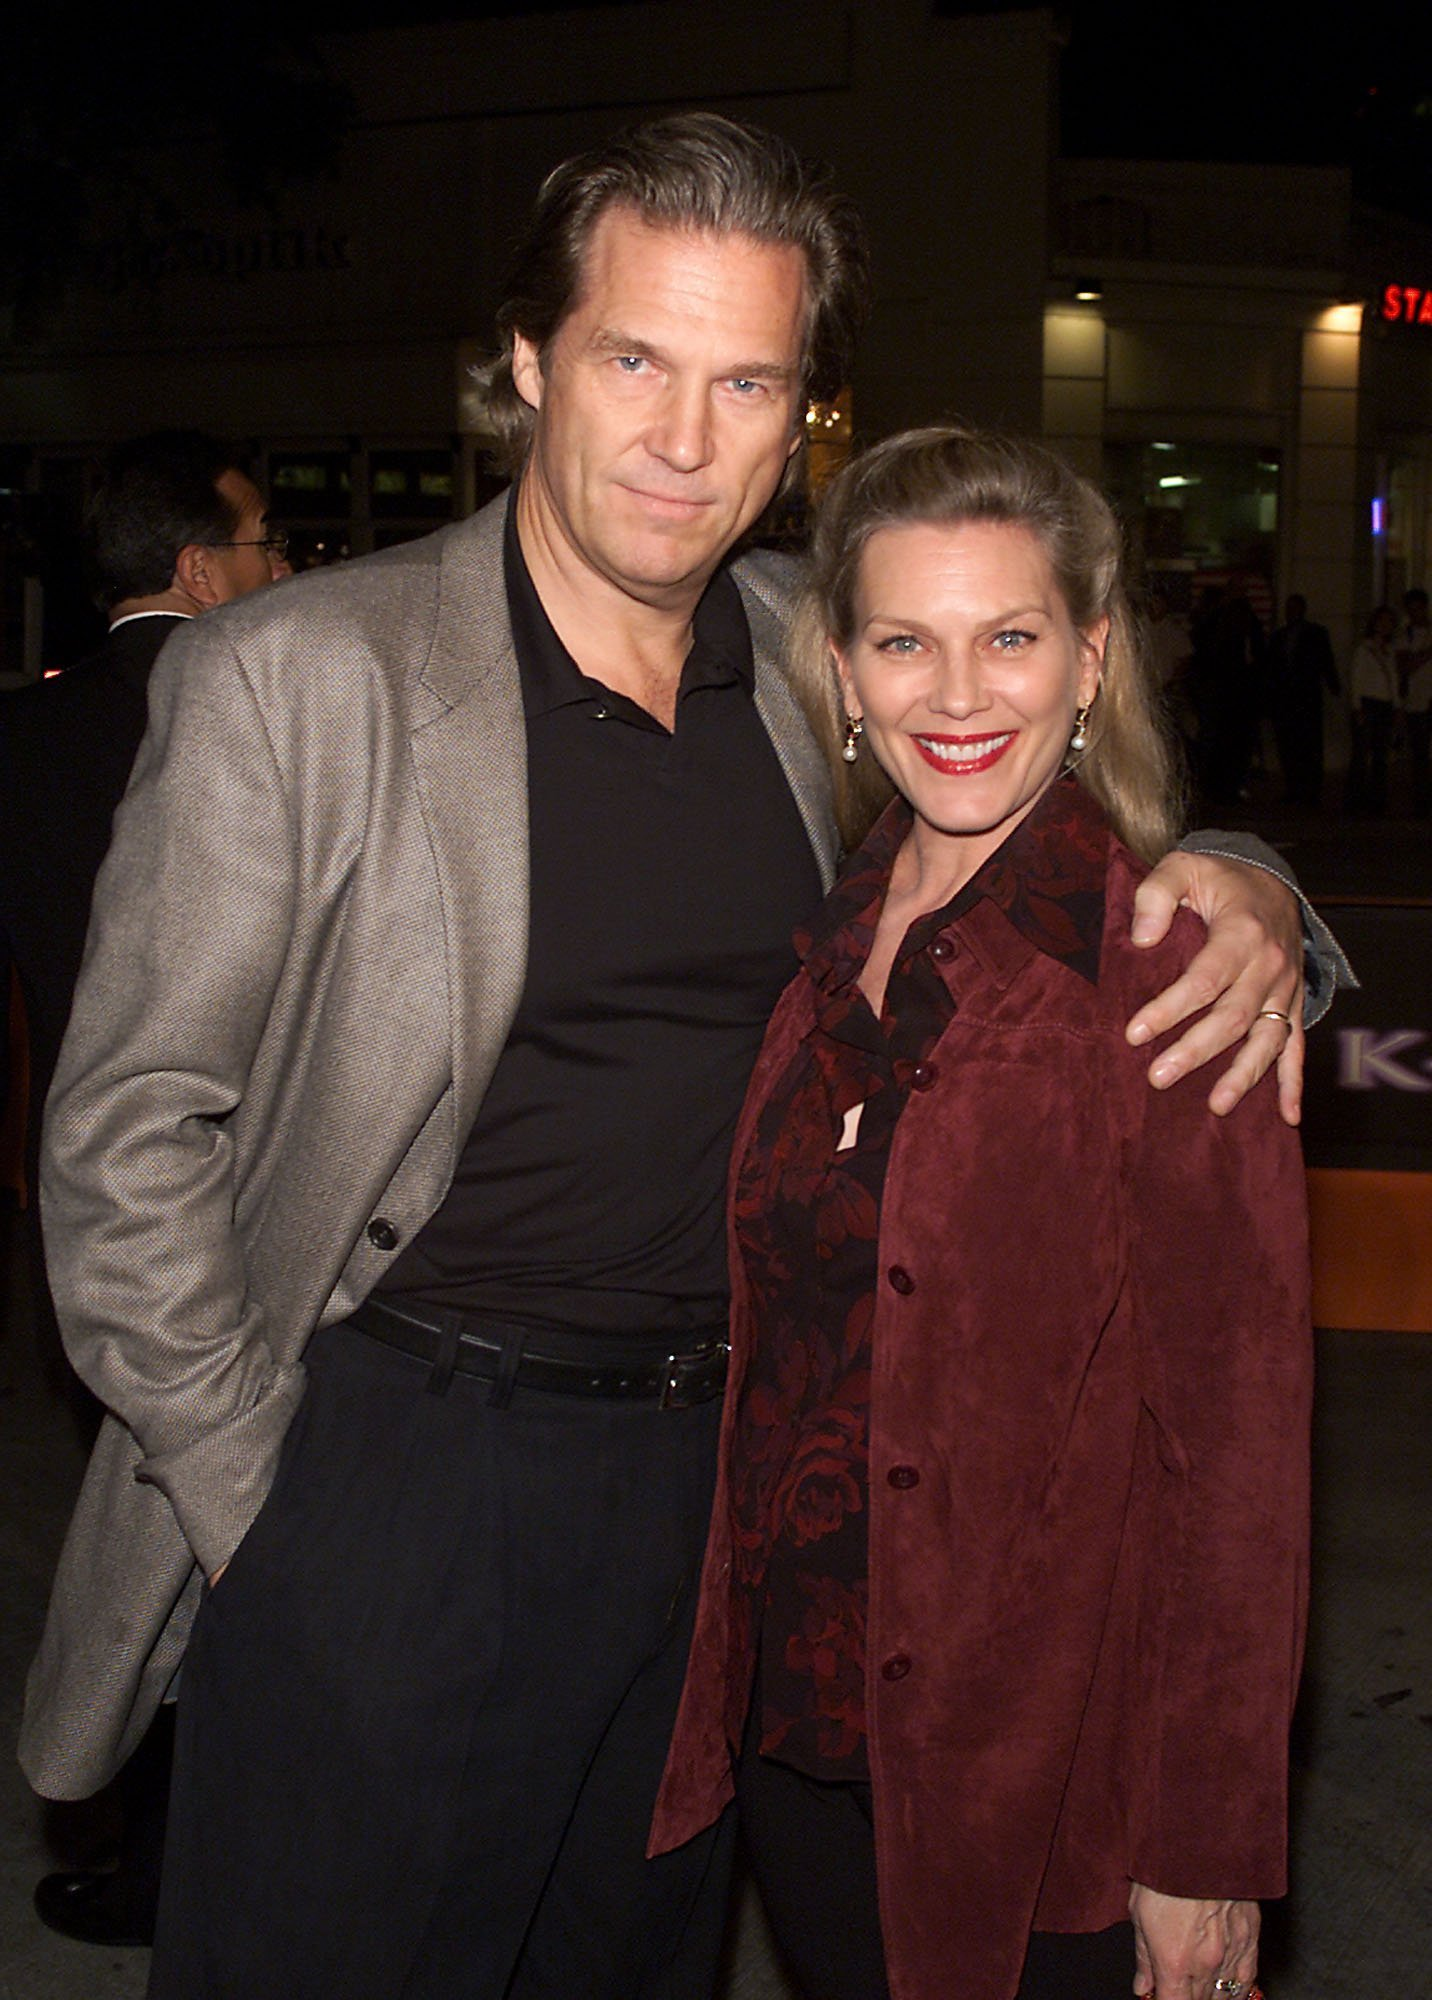 """Jeff and Susan Bridges at the premiere of """"K-Pax"""" at the Village Theater in Los Angeles on October 22, 2001. 